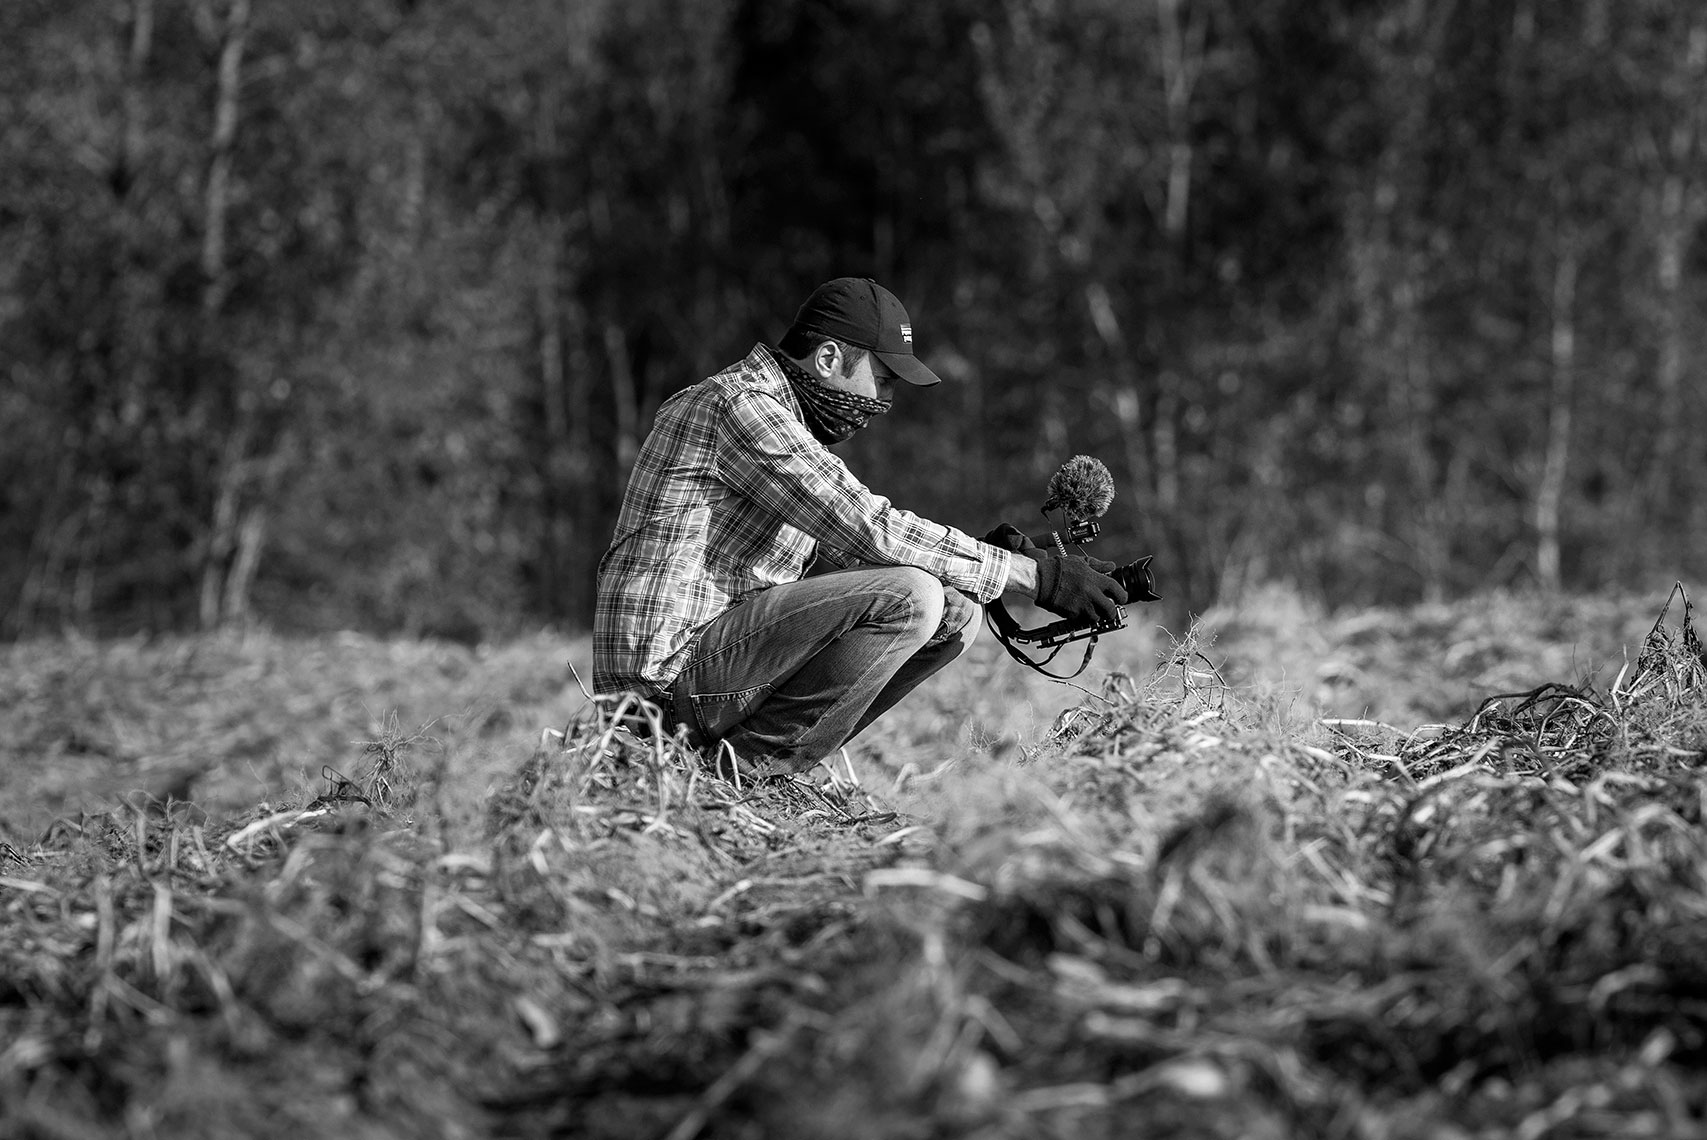 Farming and Agricultural photographer Dean Casavechia